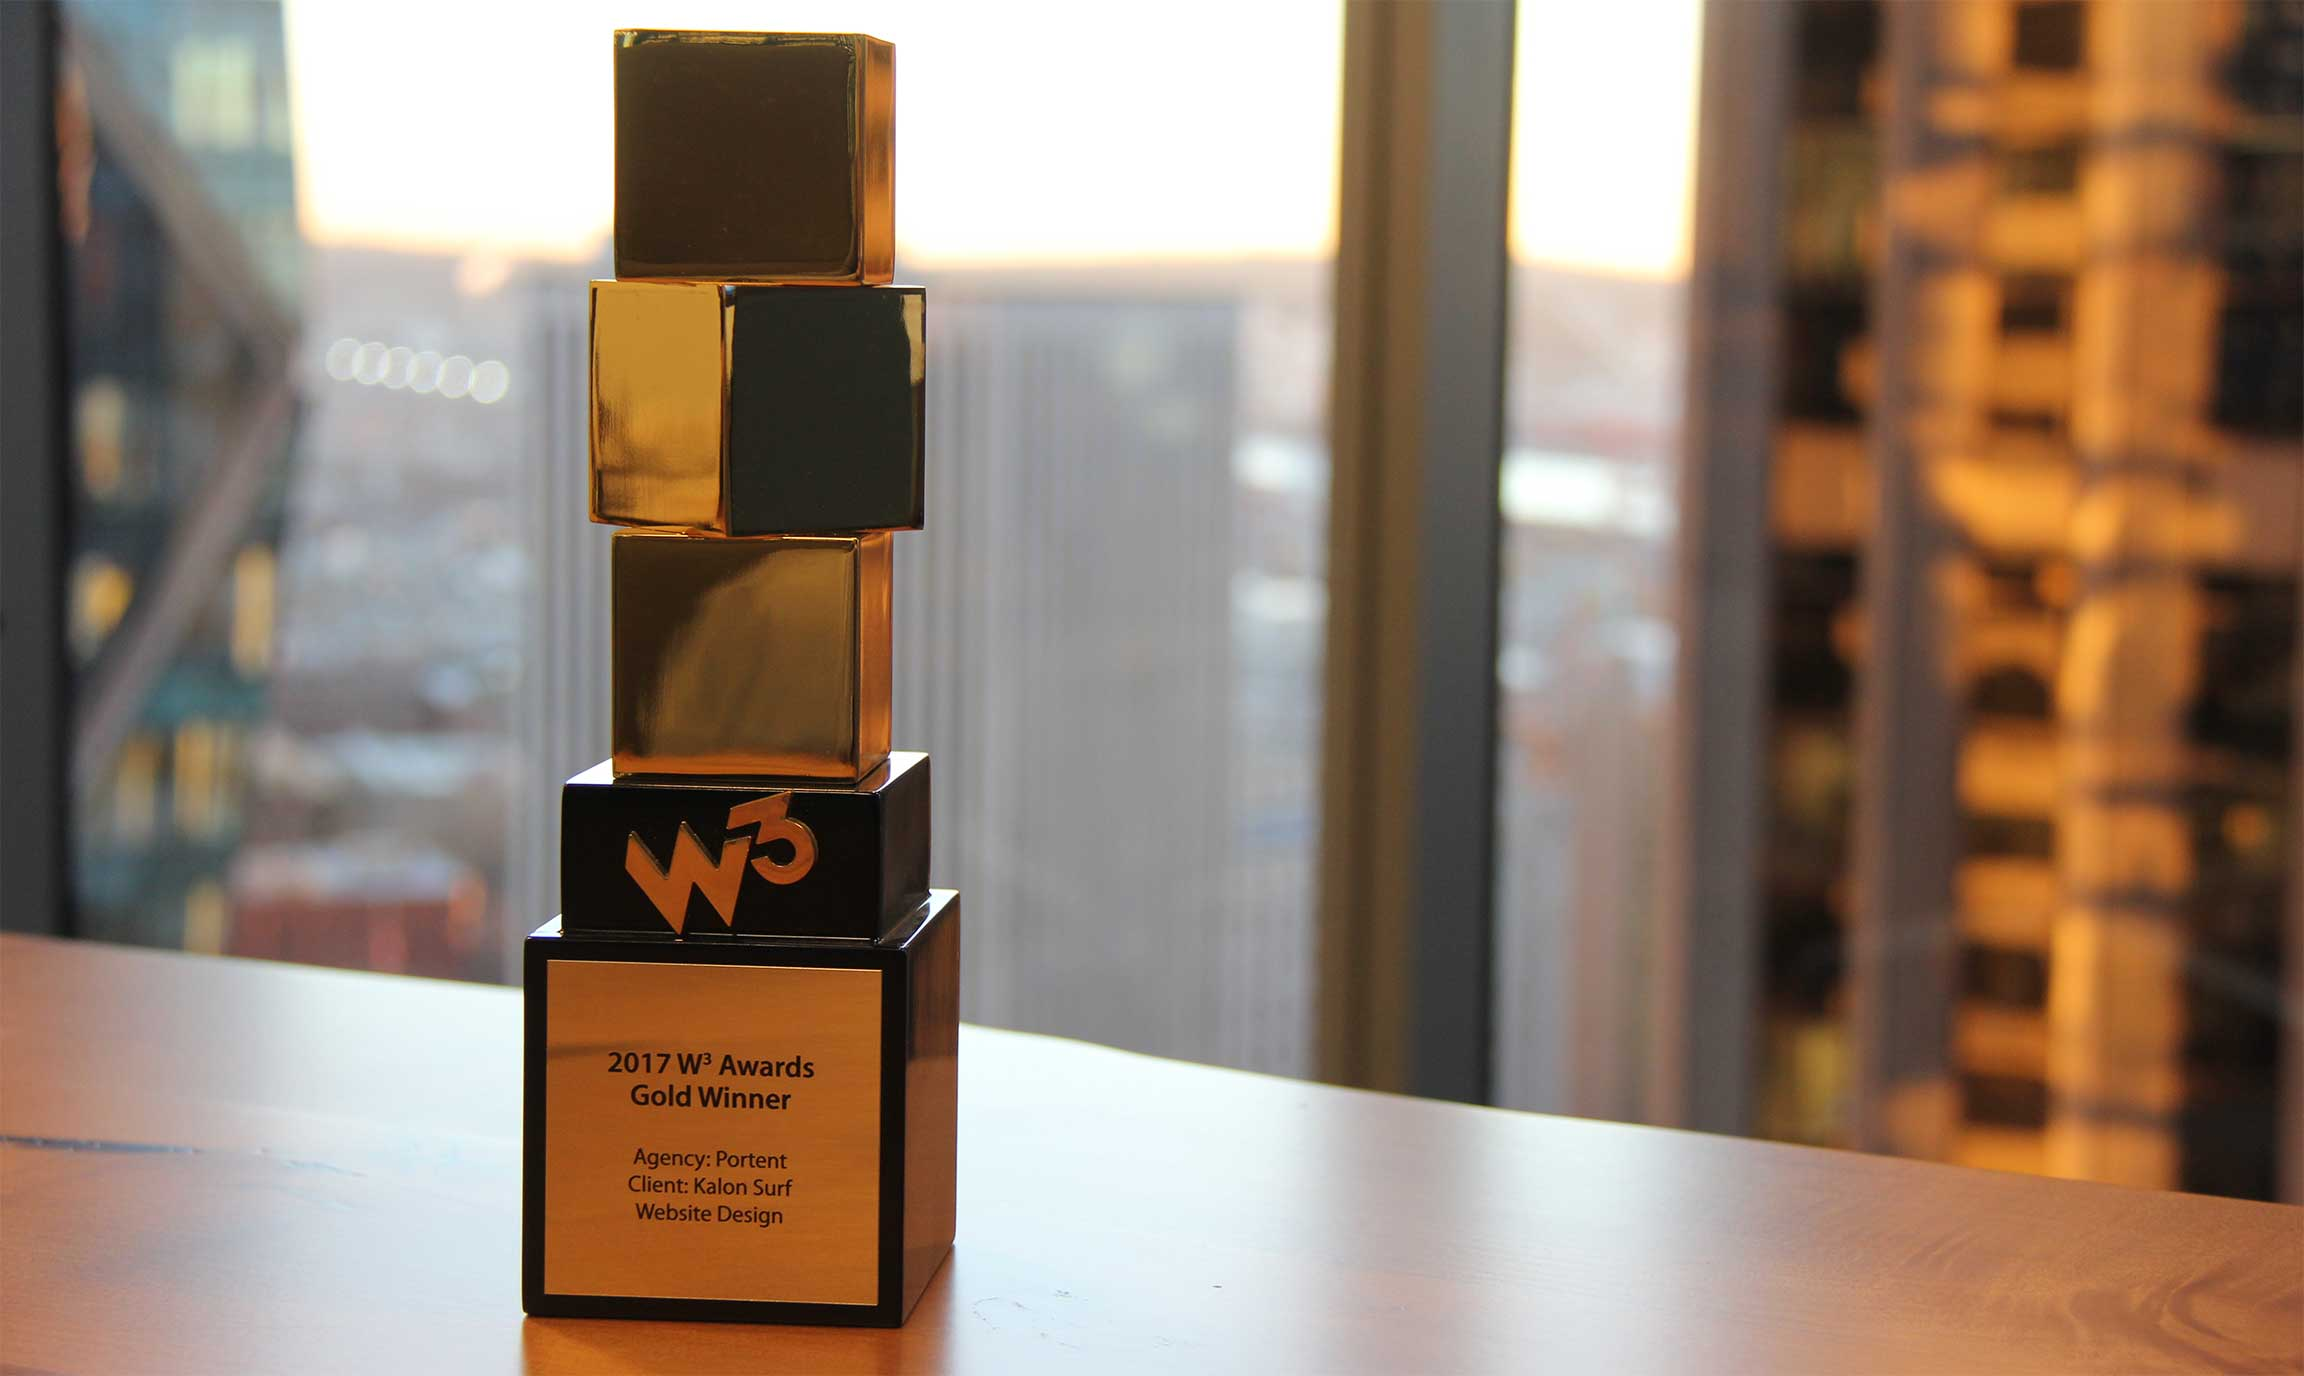 W3 award for best practices Kalon Surf and Portent a digital marketing agency in Seattle